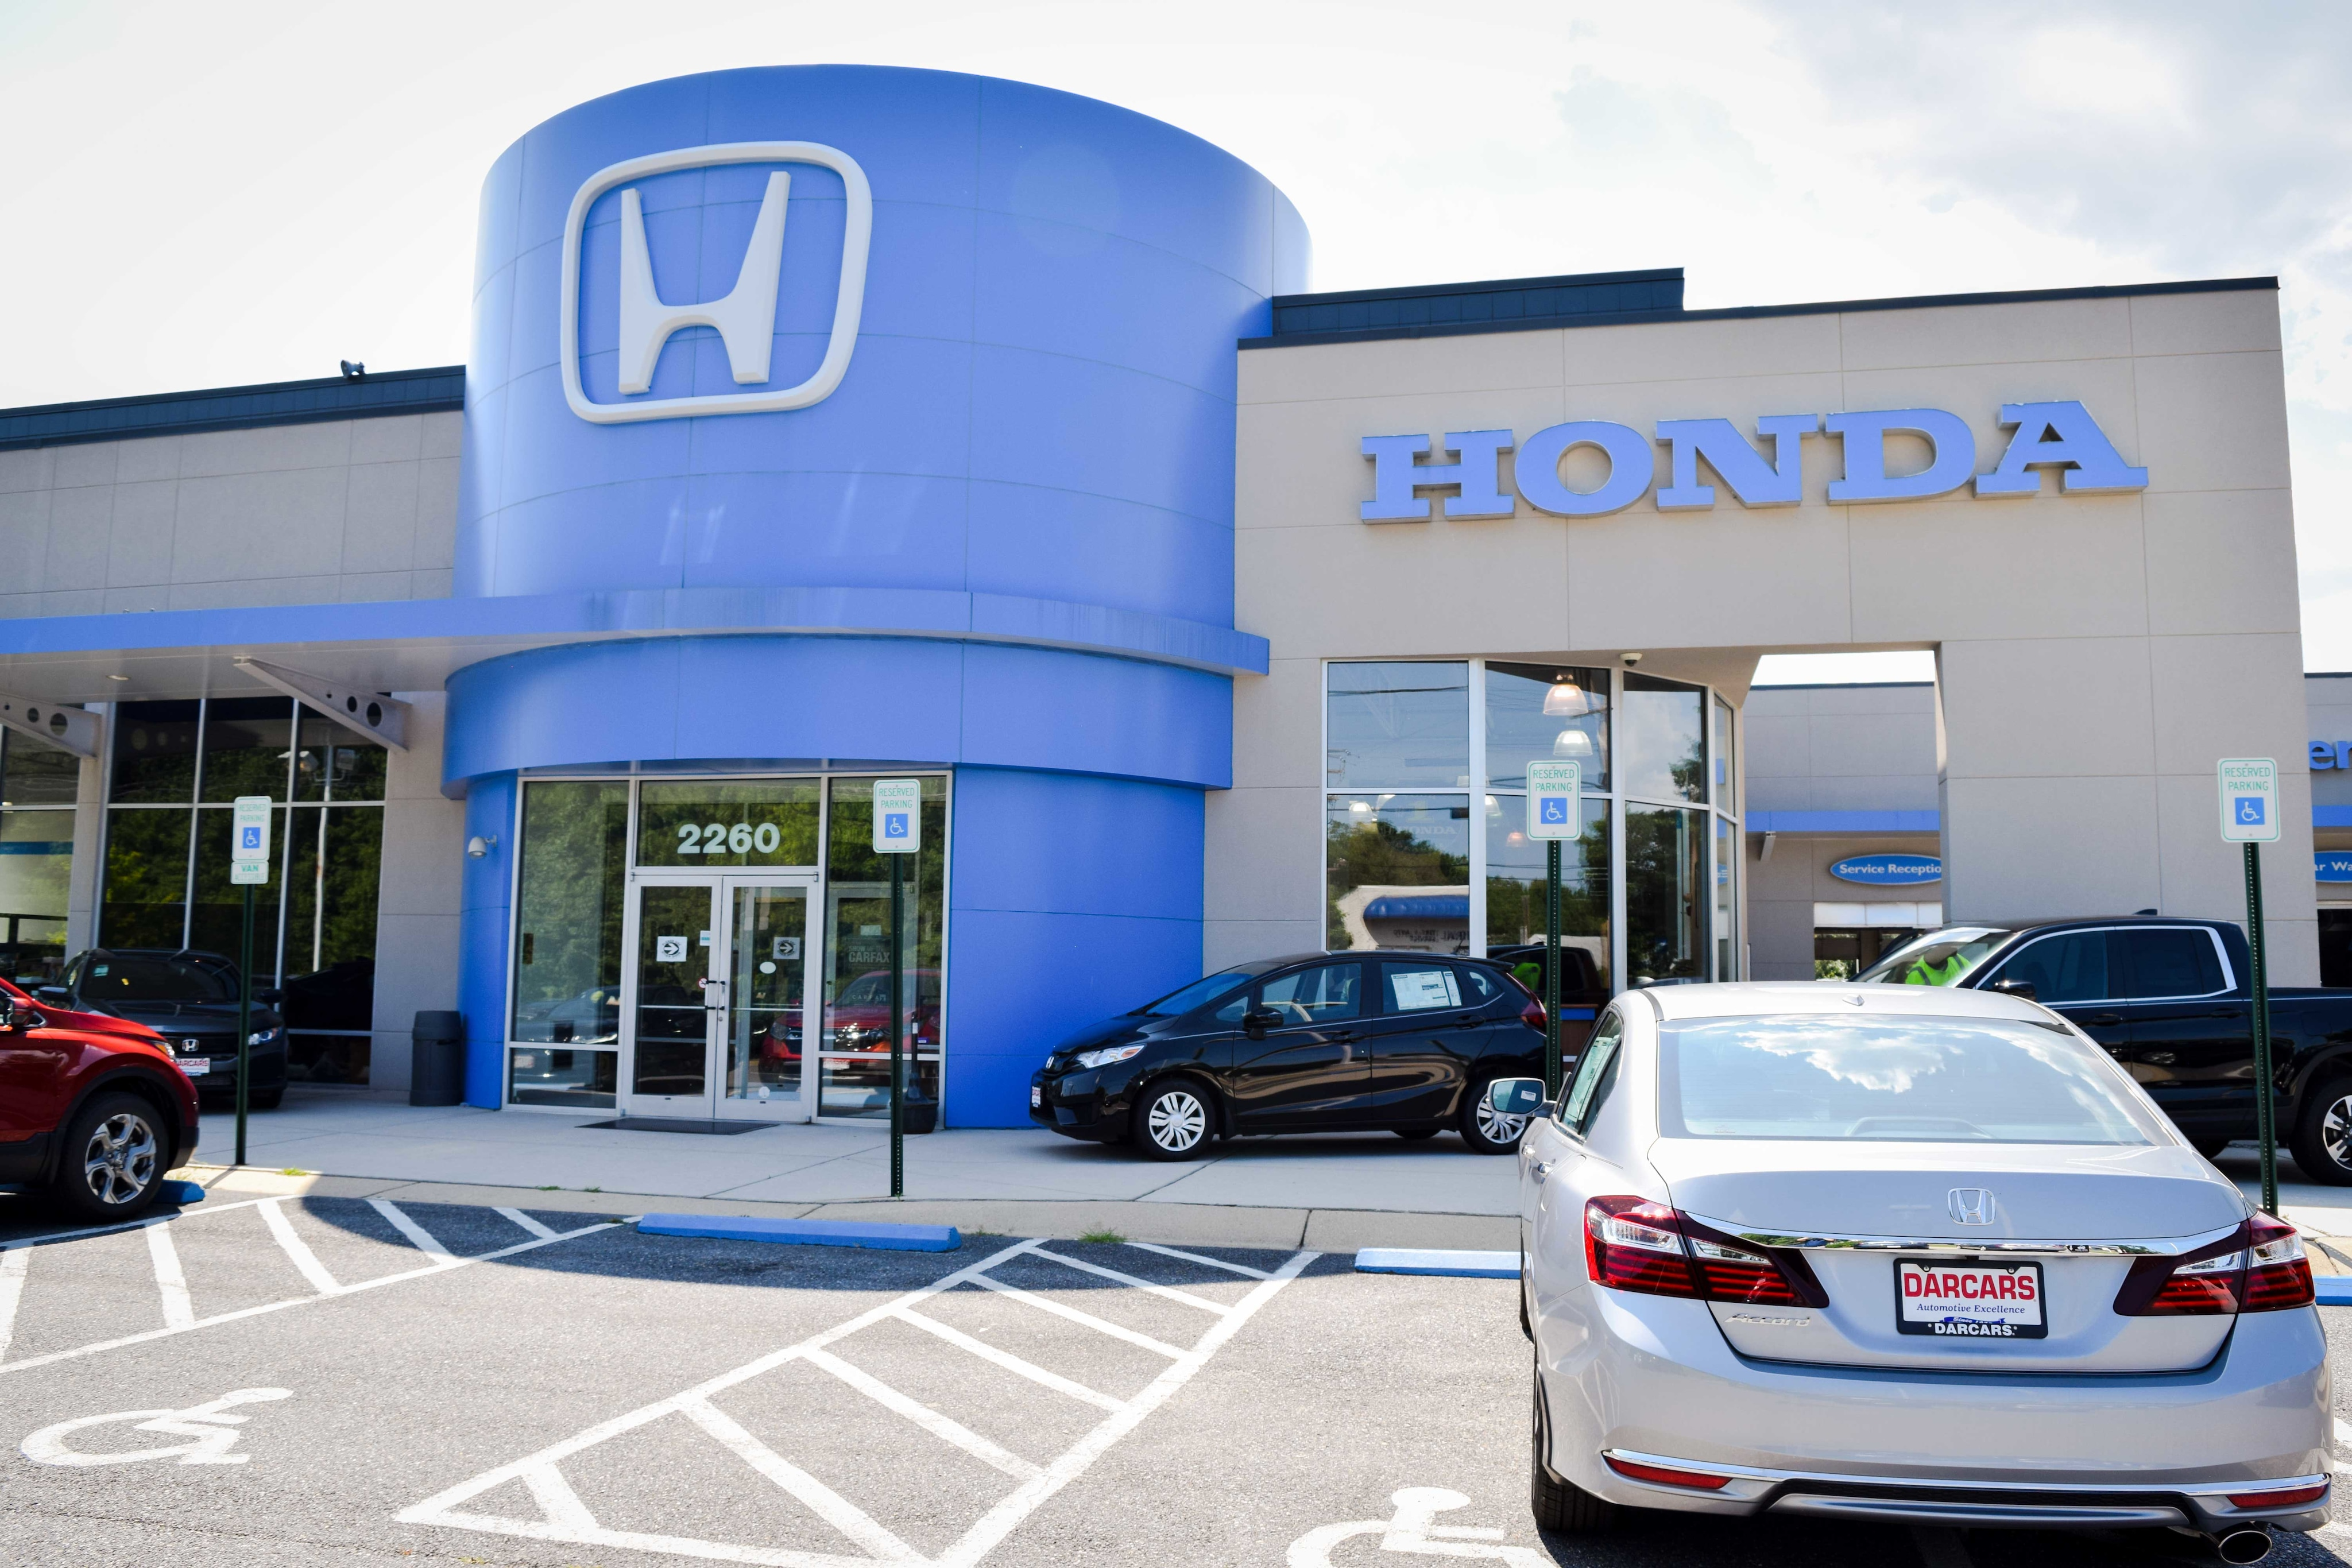 darcars honda your local new honda and used car dealership and source for auto repair maintenance in bowie md